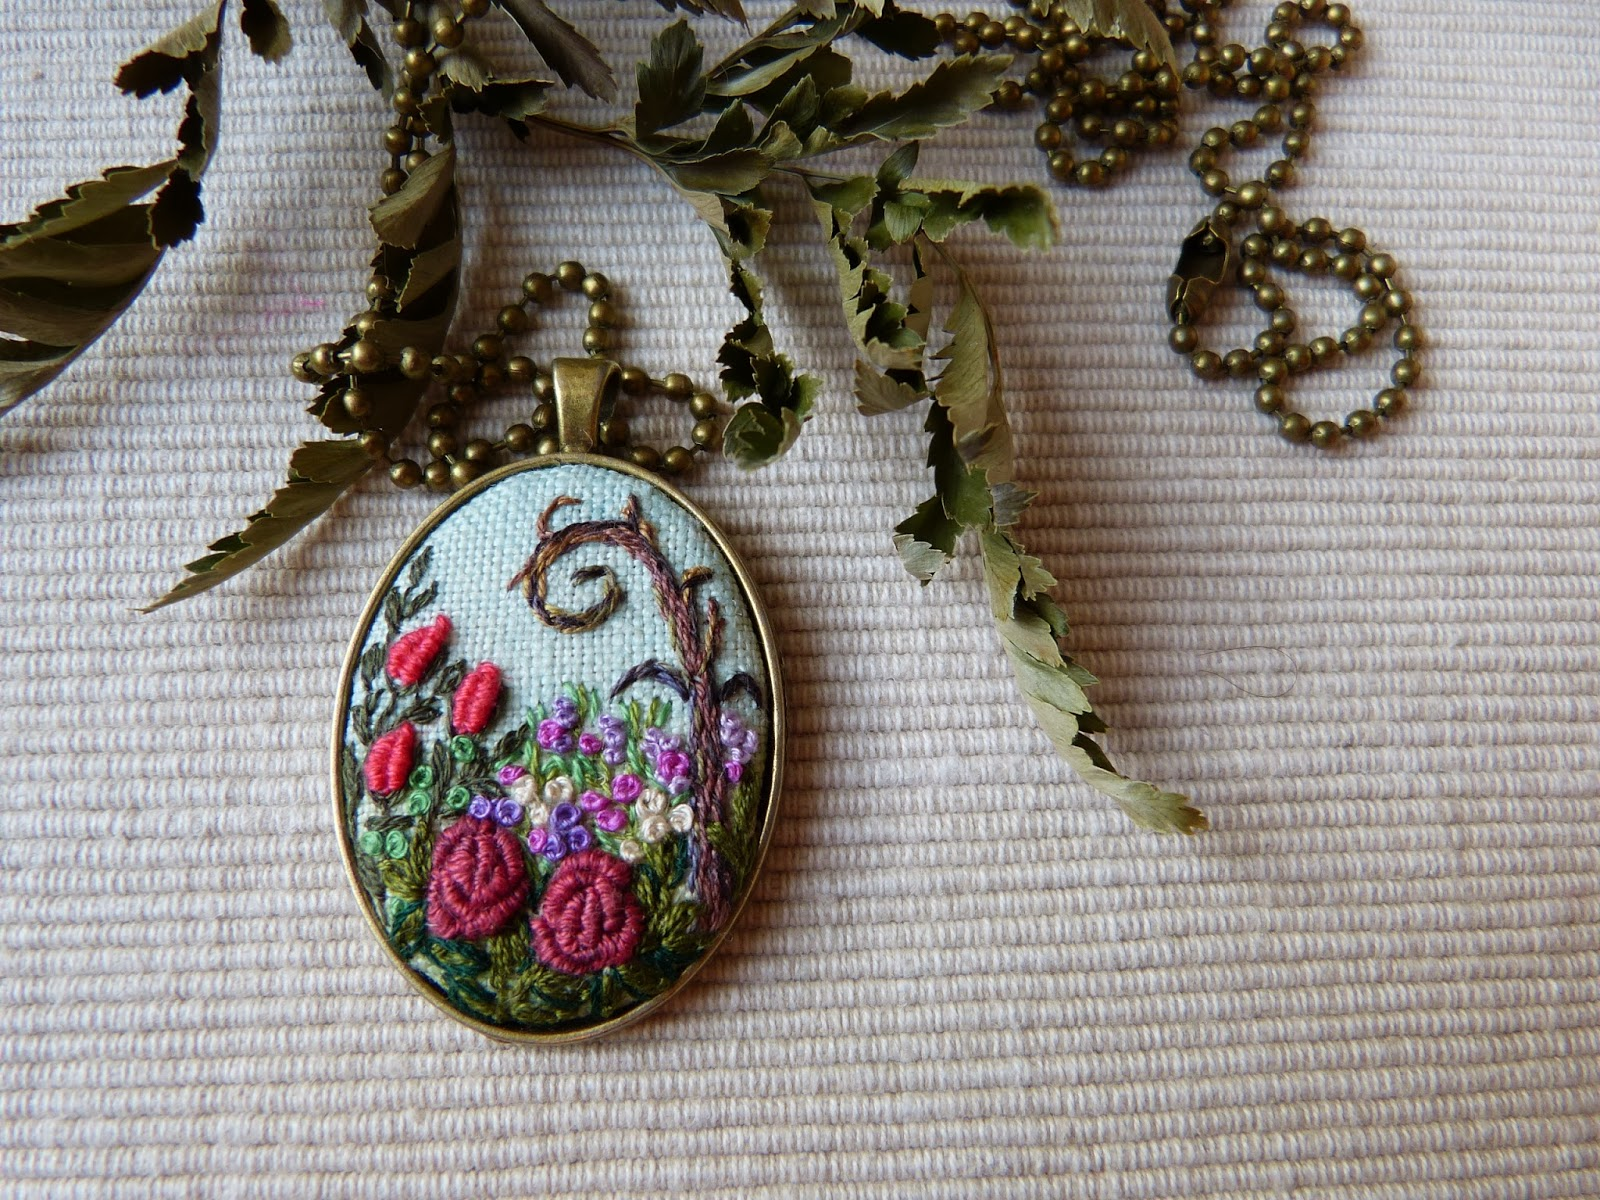 haft rococo, embroidered pendant, haftowane róże, haftowany naszyjnik, naszyjnik z haftem, embroidered jewerly, naszyjnik vintage, medalion z haftem, handmade jewerly, embroidered necklace, vintage jewerly, biżuteria retro, Alicja w krainie czarów